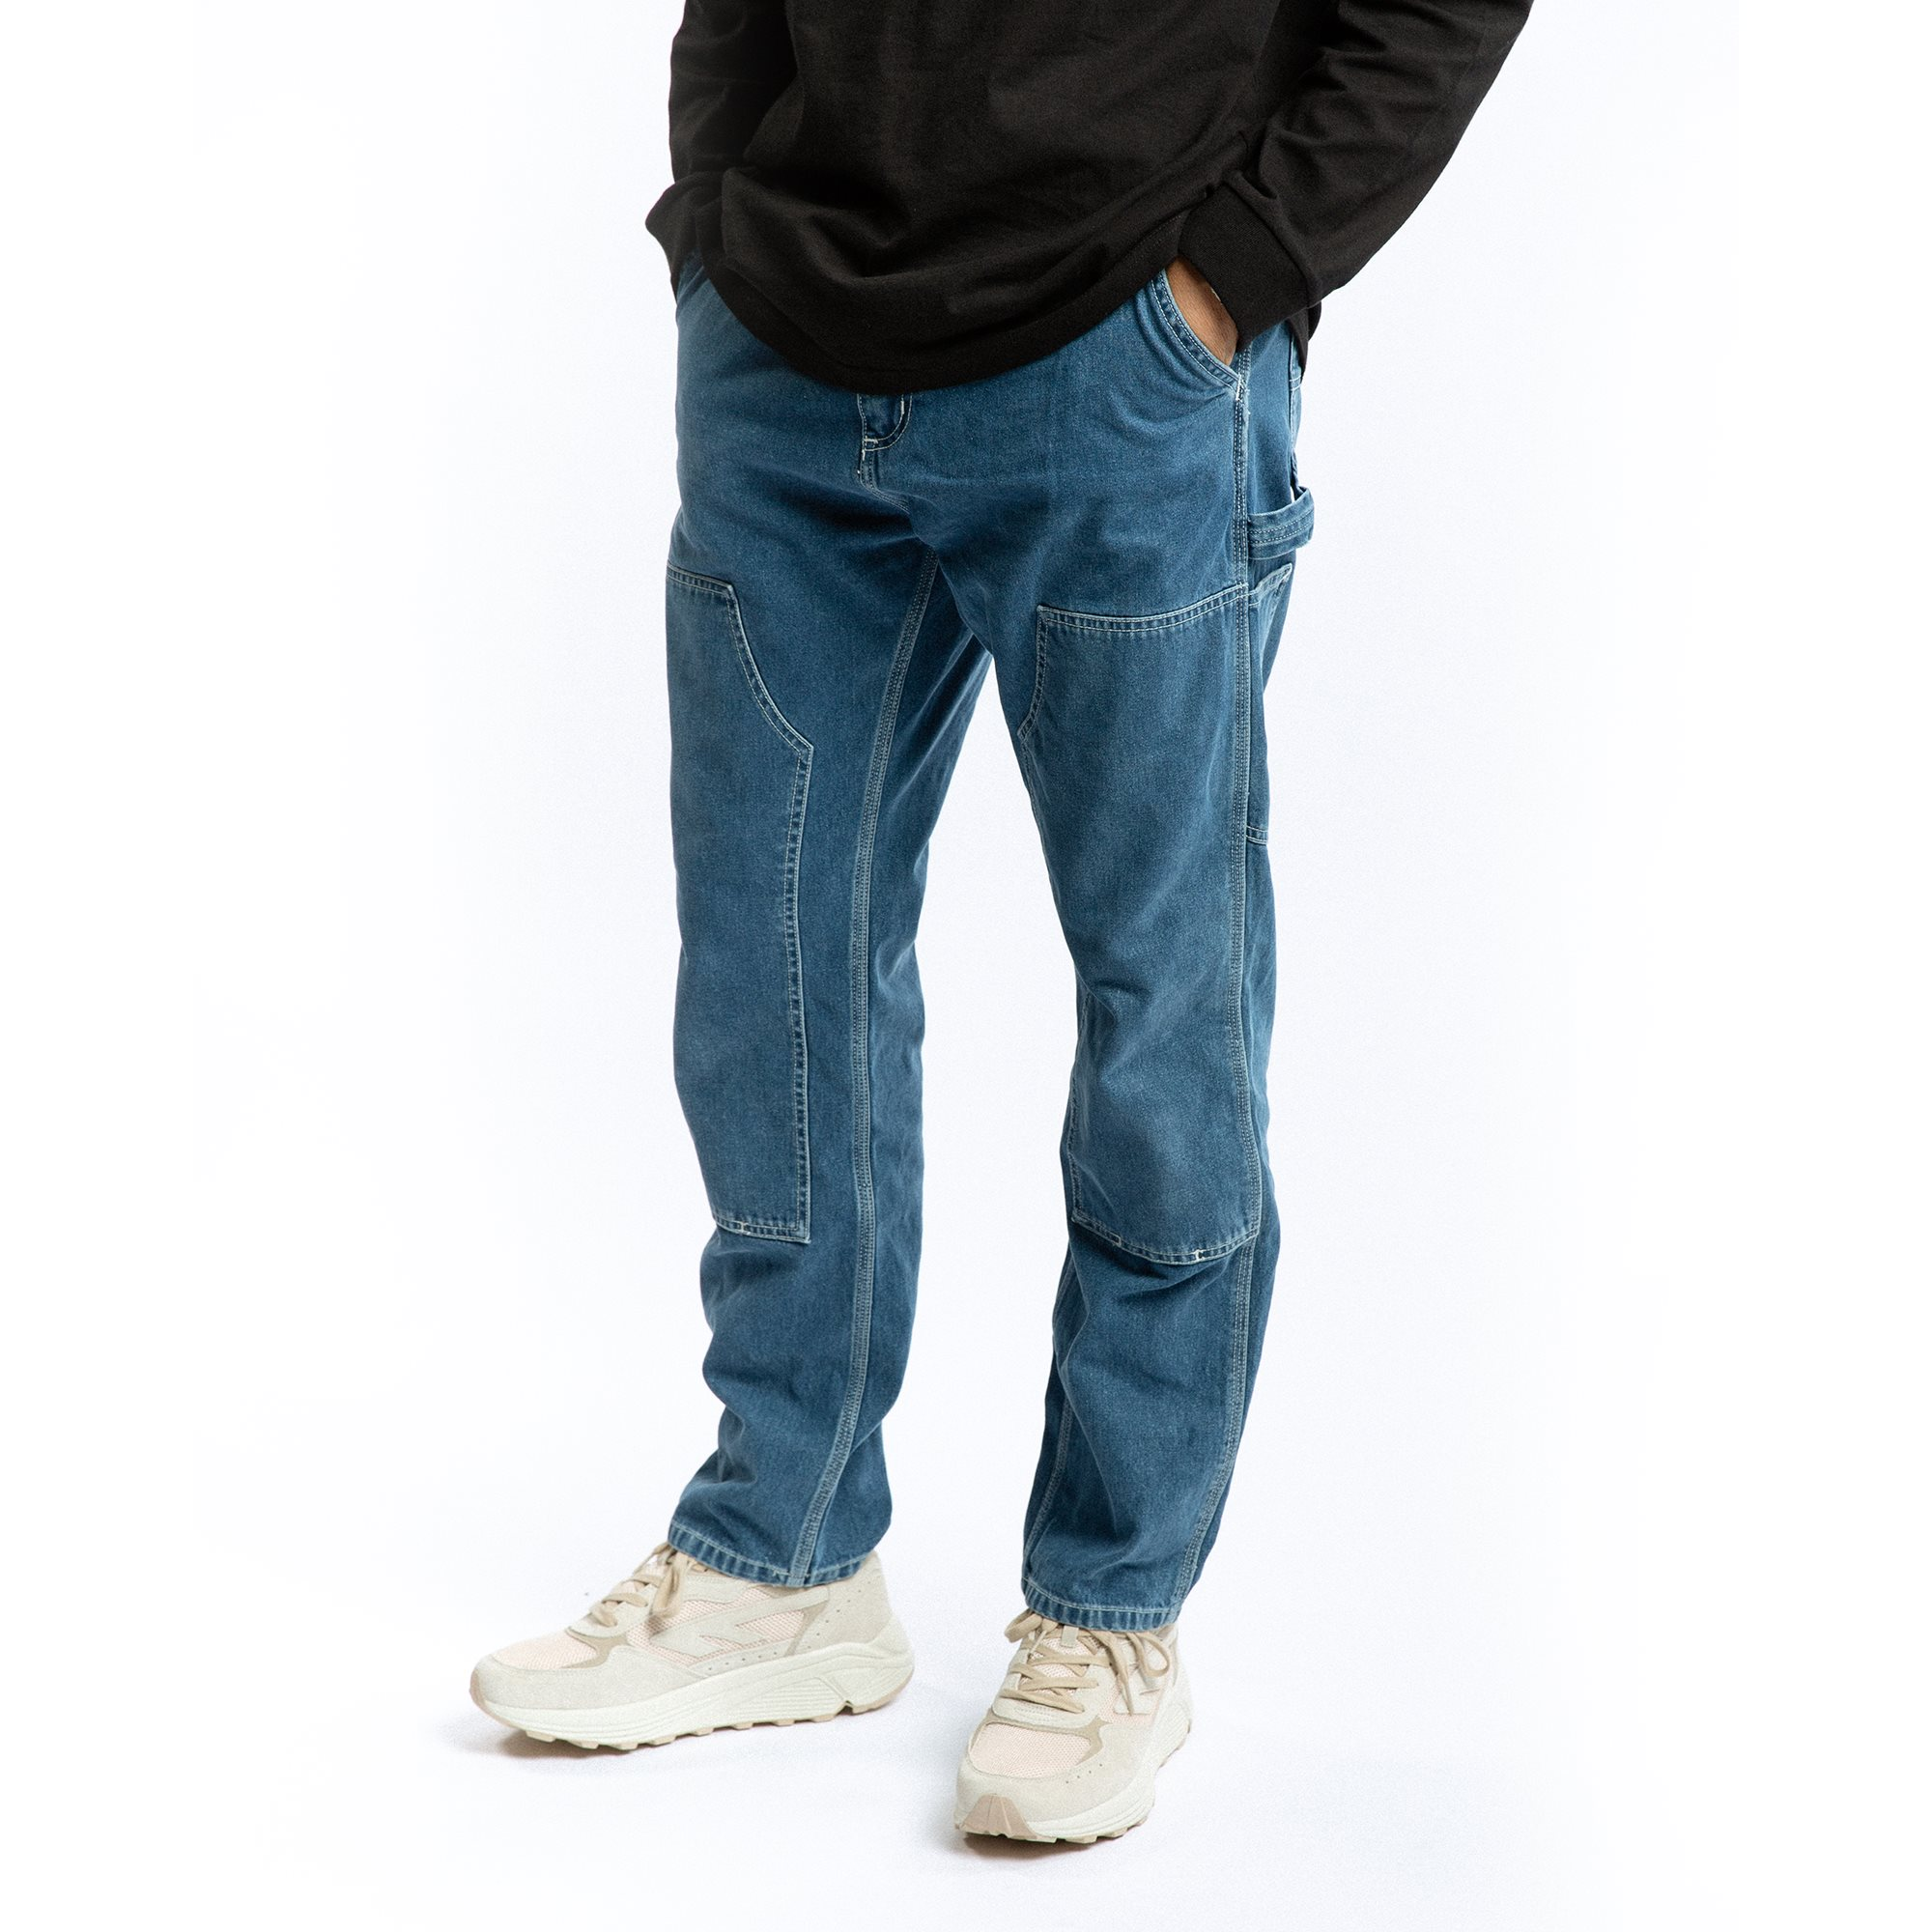 Jeans - Tapered fit - Blue